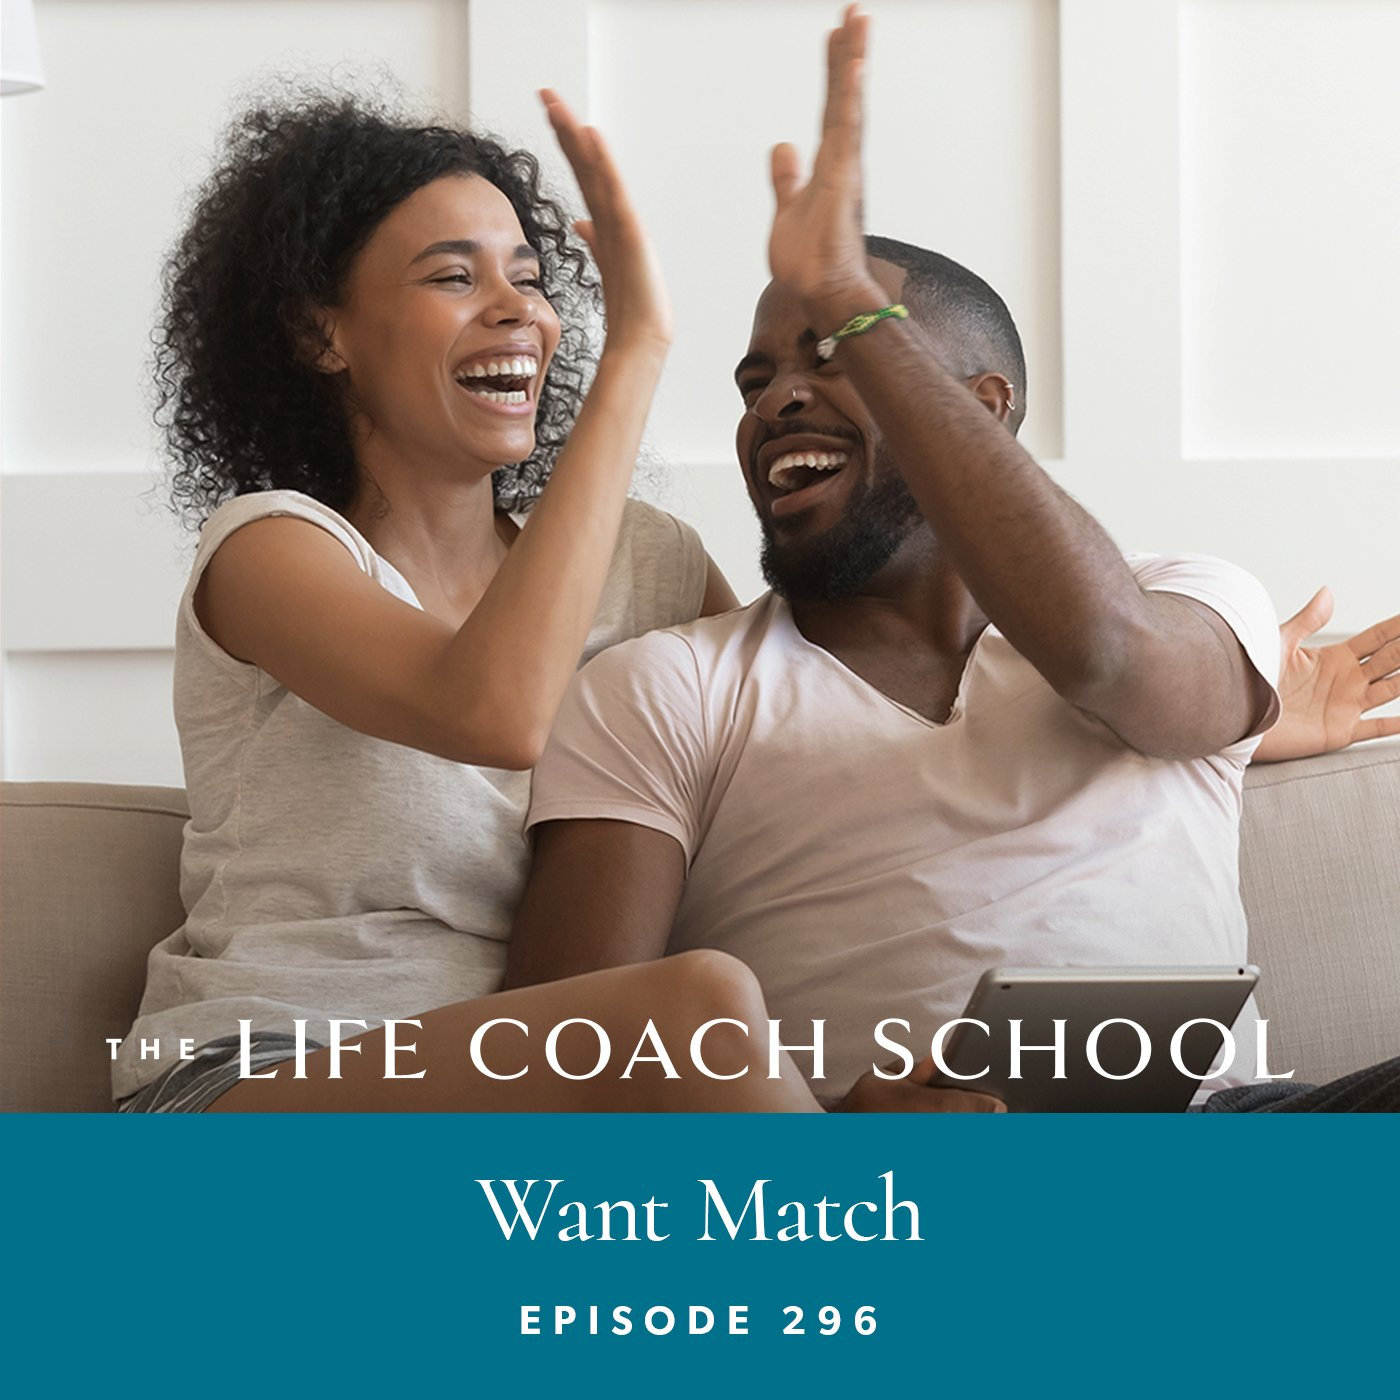 The Life Coach School Podcast with Brooke Castillo | Episode 296 | Want Match